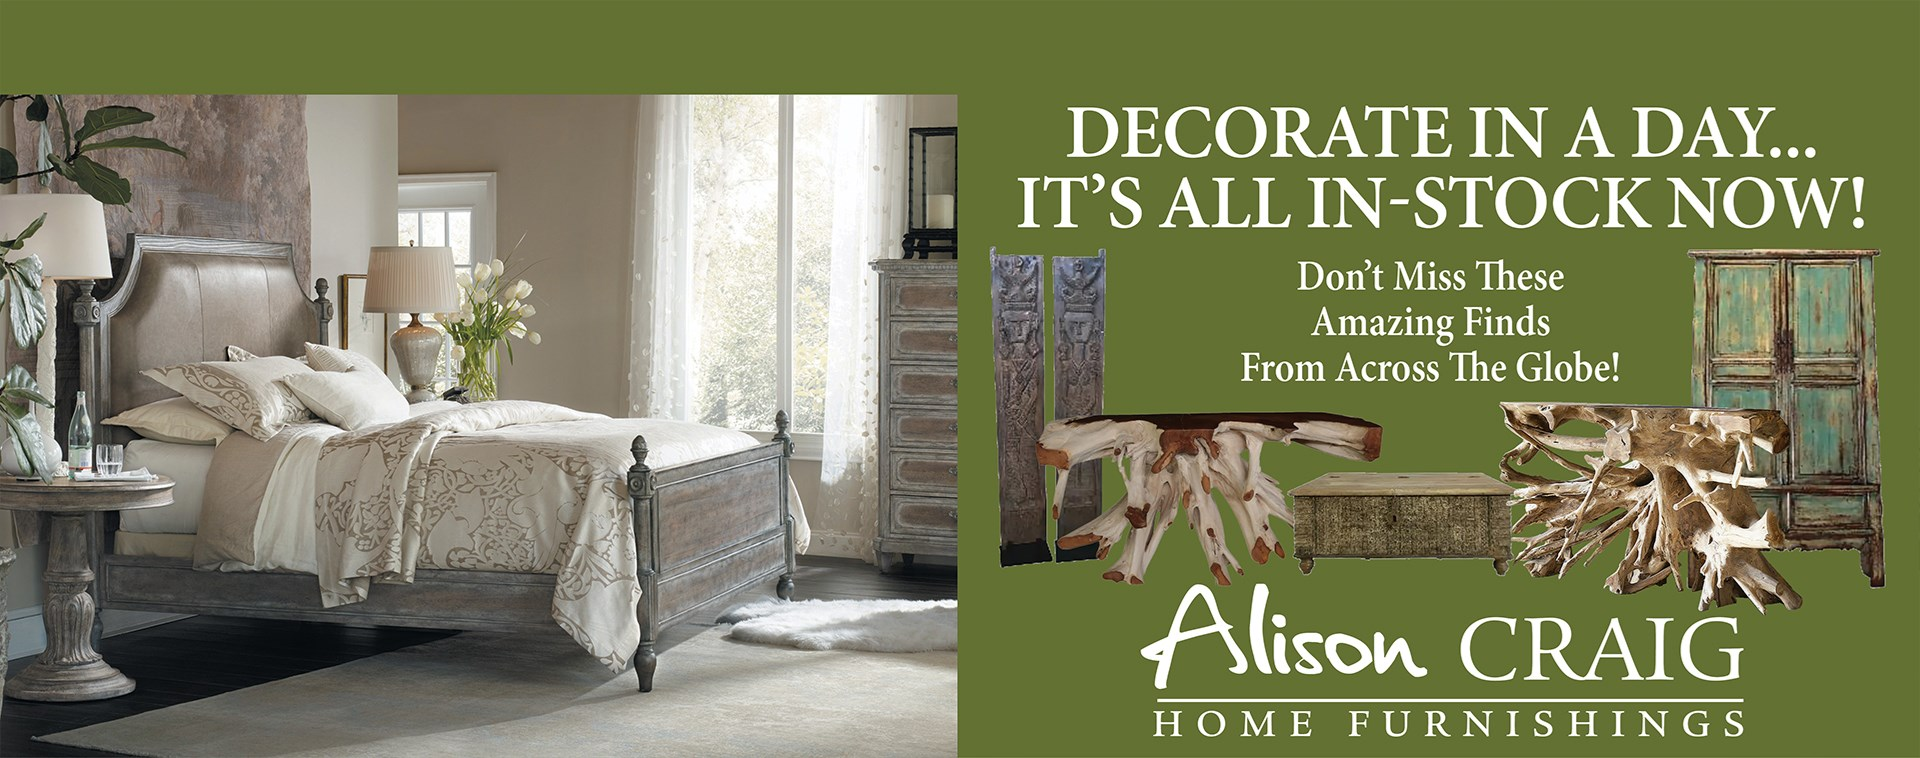 Decorate in A Day!